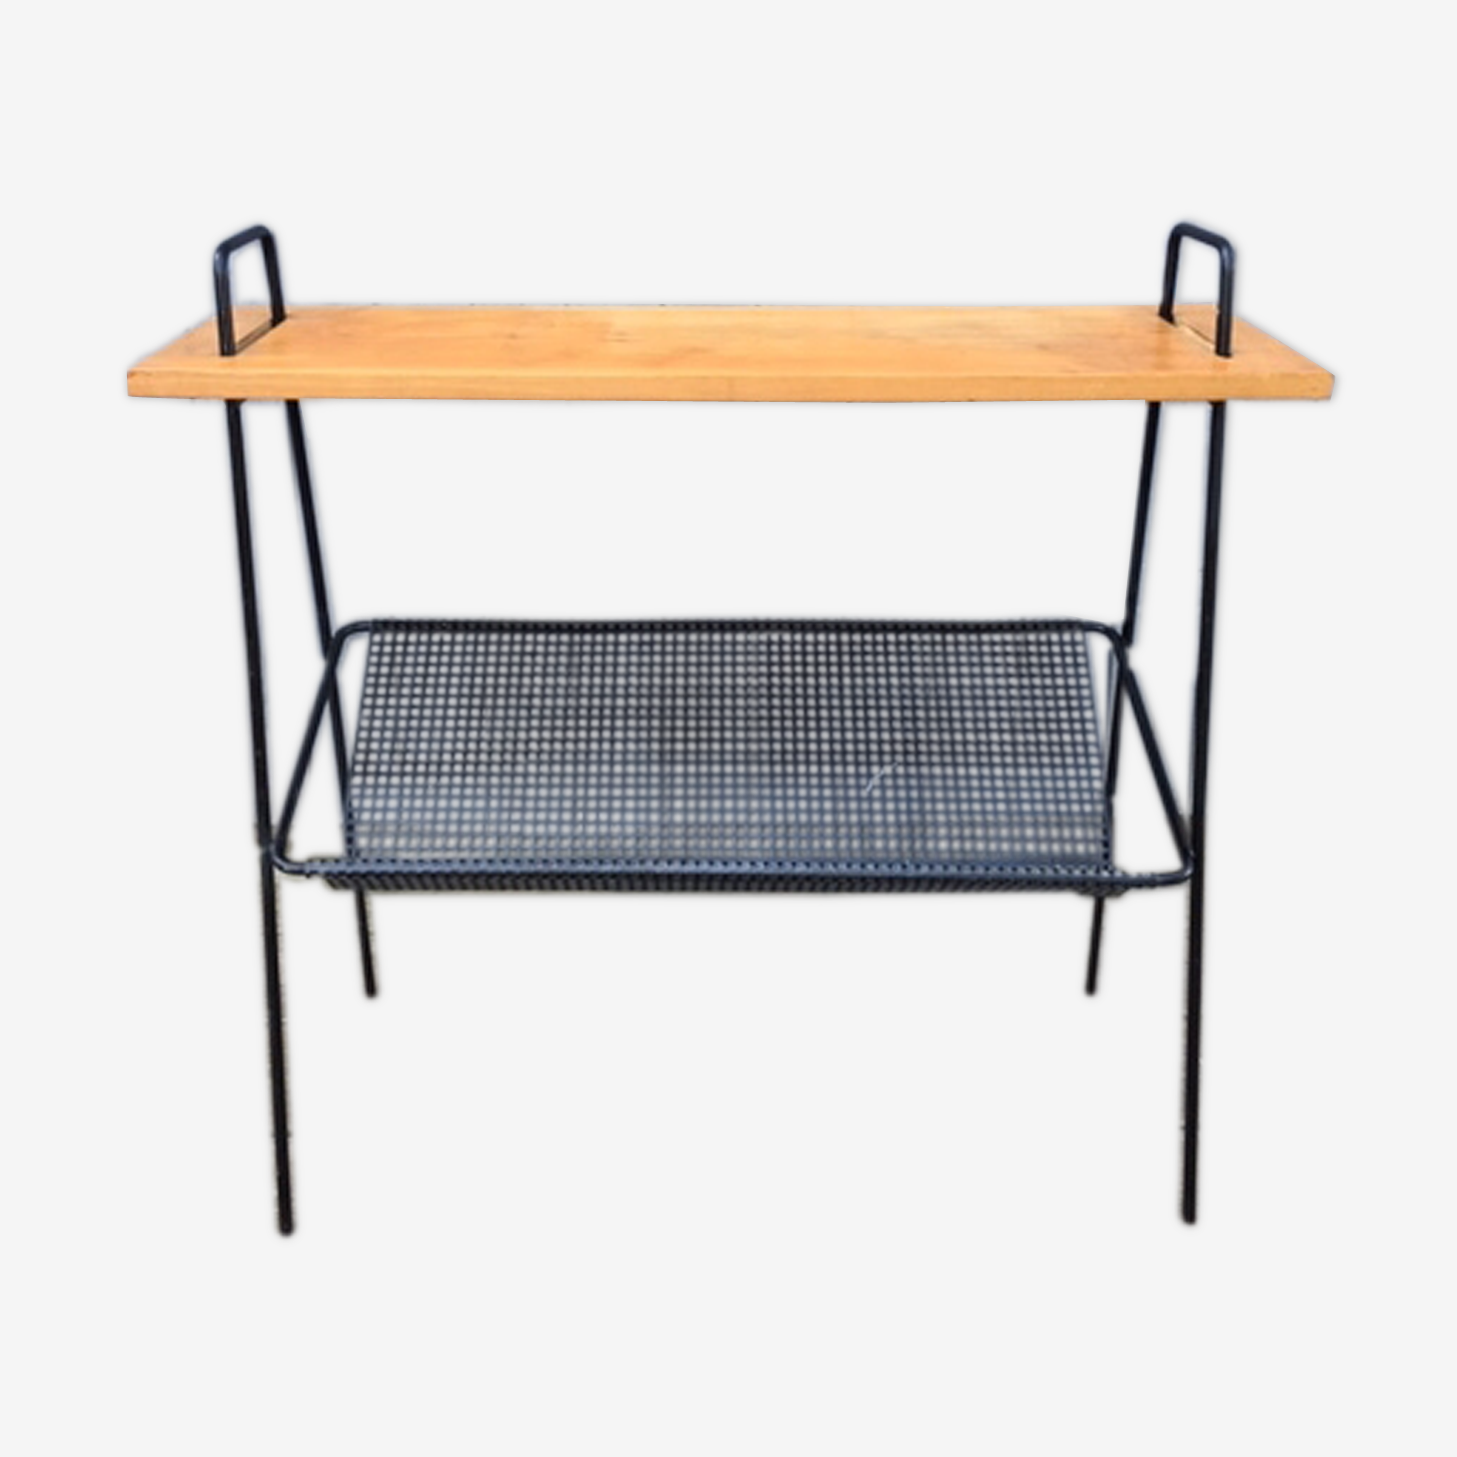 Modernista console metal and wood 1950